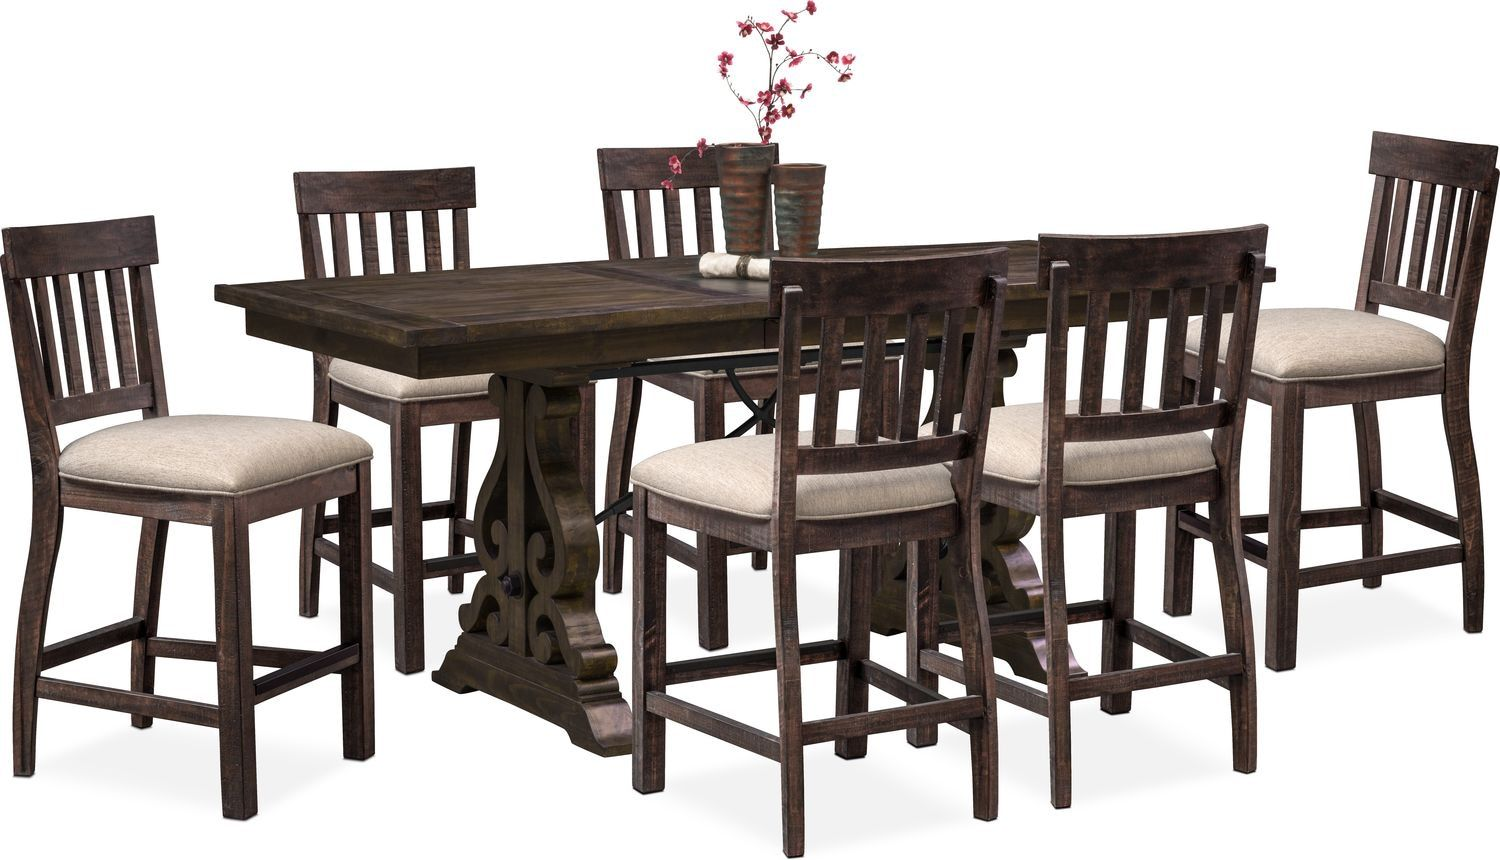 American Signature Furniture Charthouse Counter Height Dining